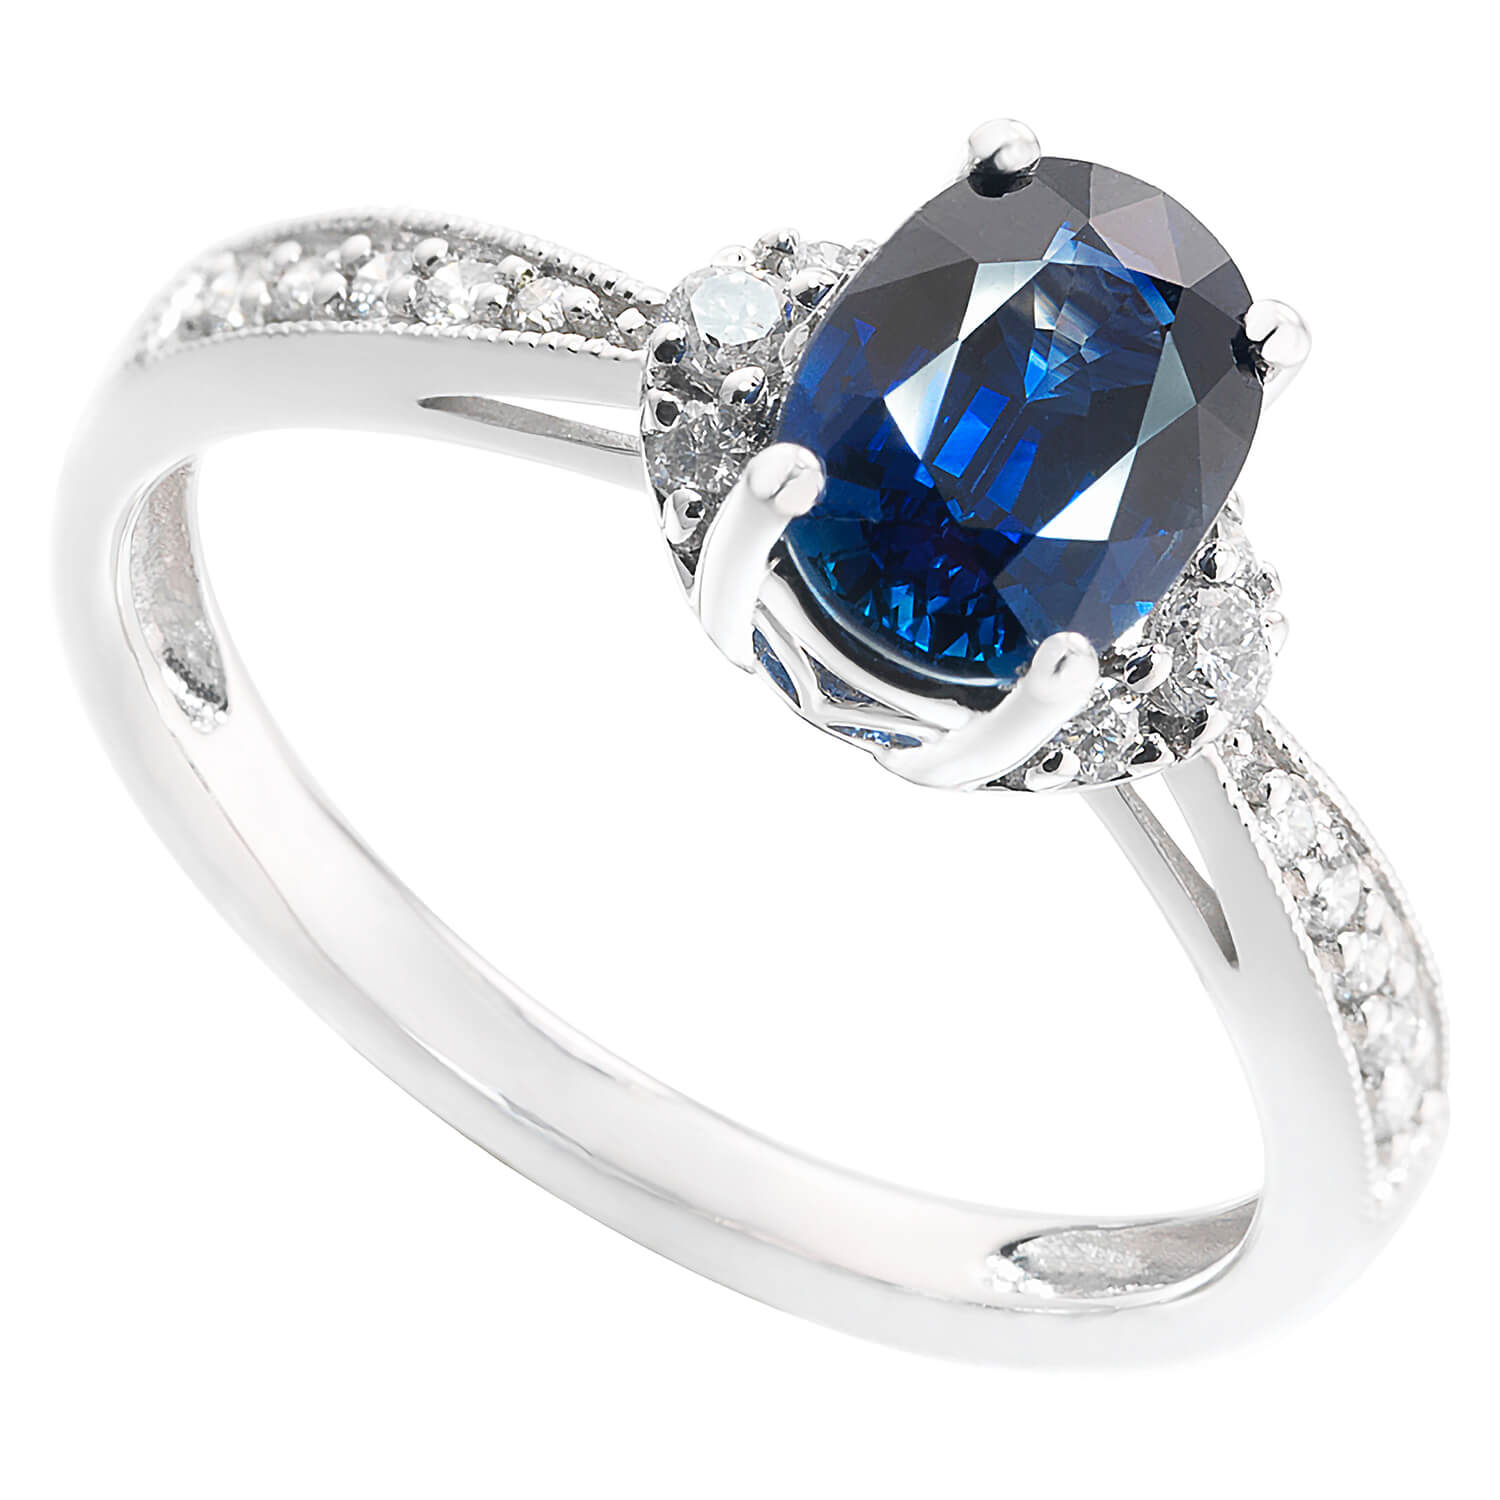 18ct White Gold 0.15ct Diamond & Oval Sapphire Ring